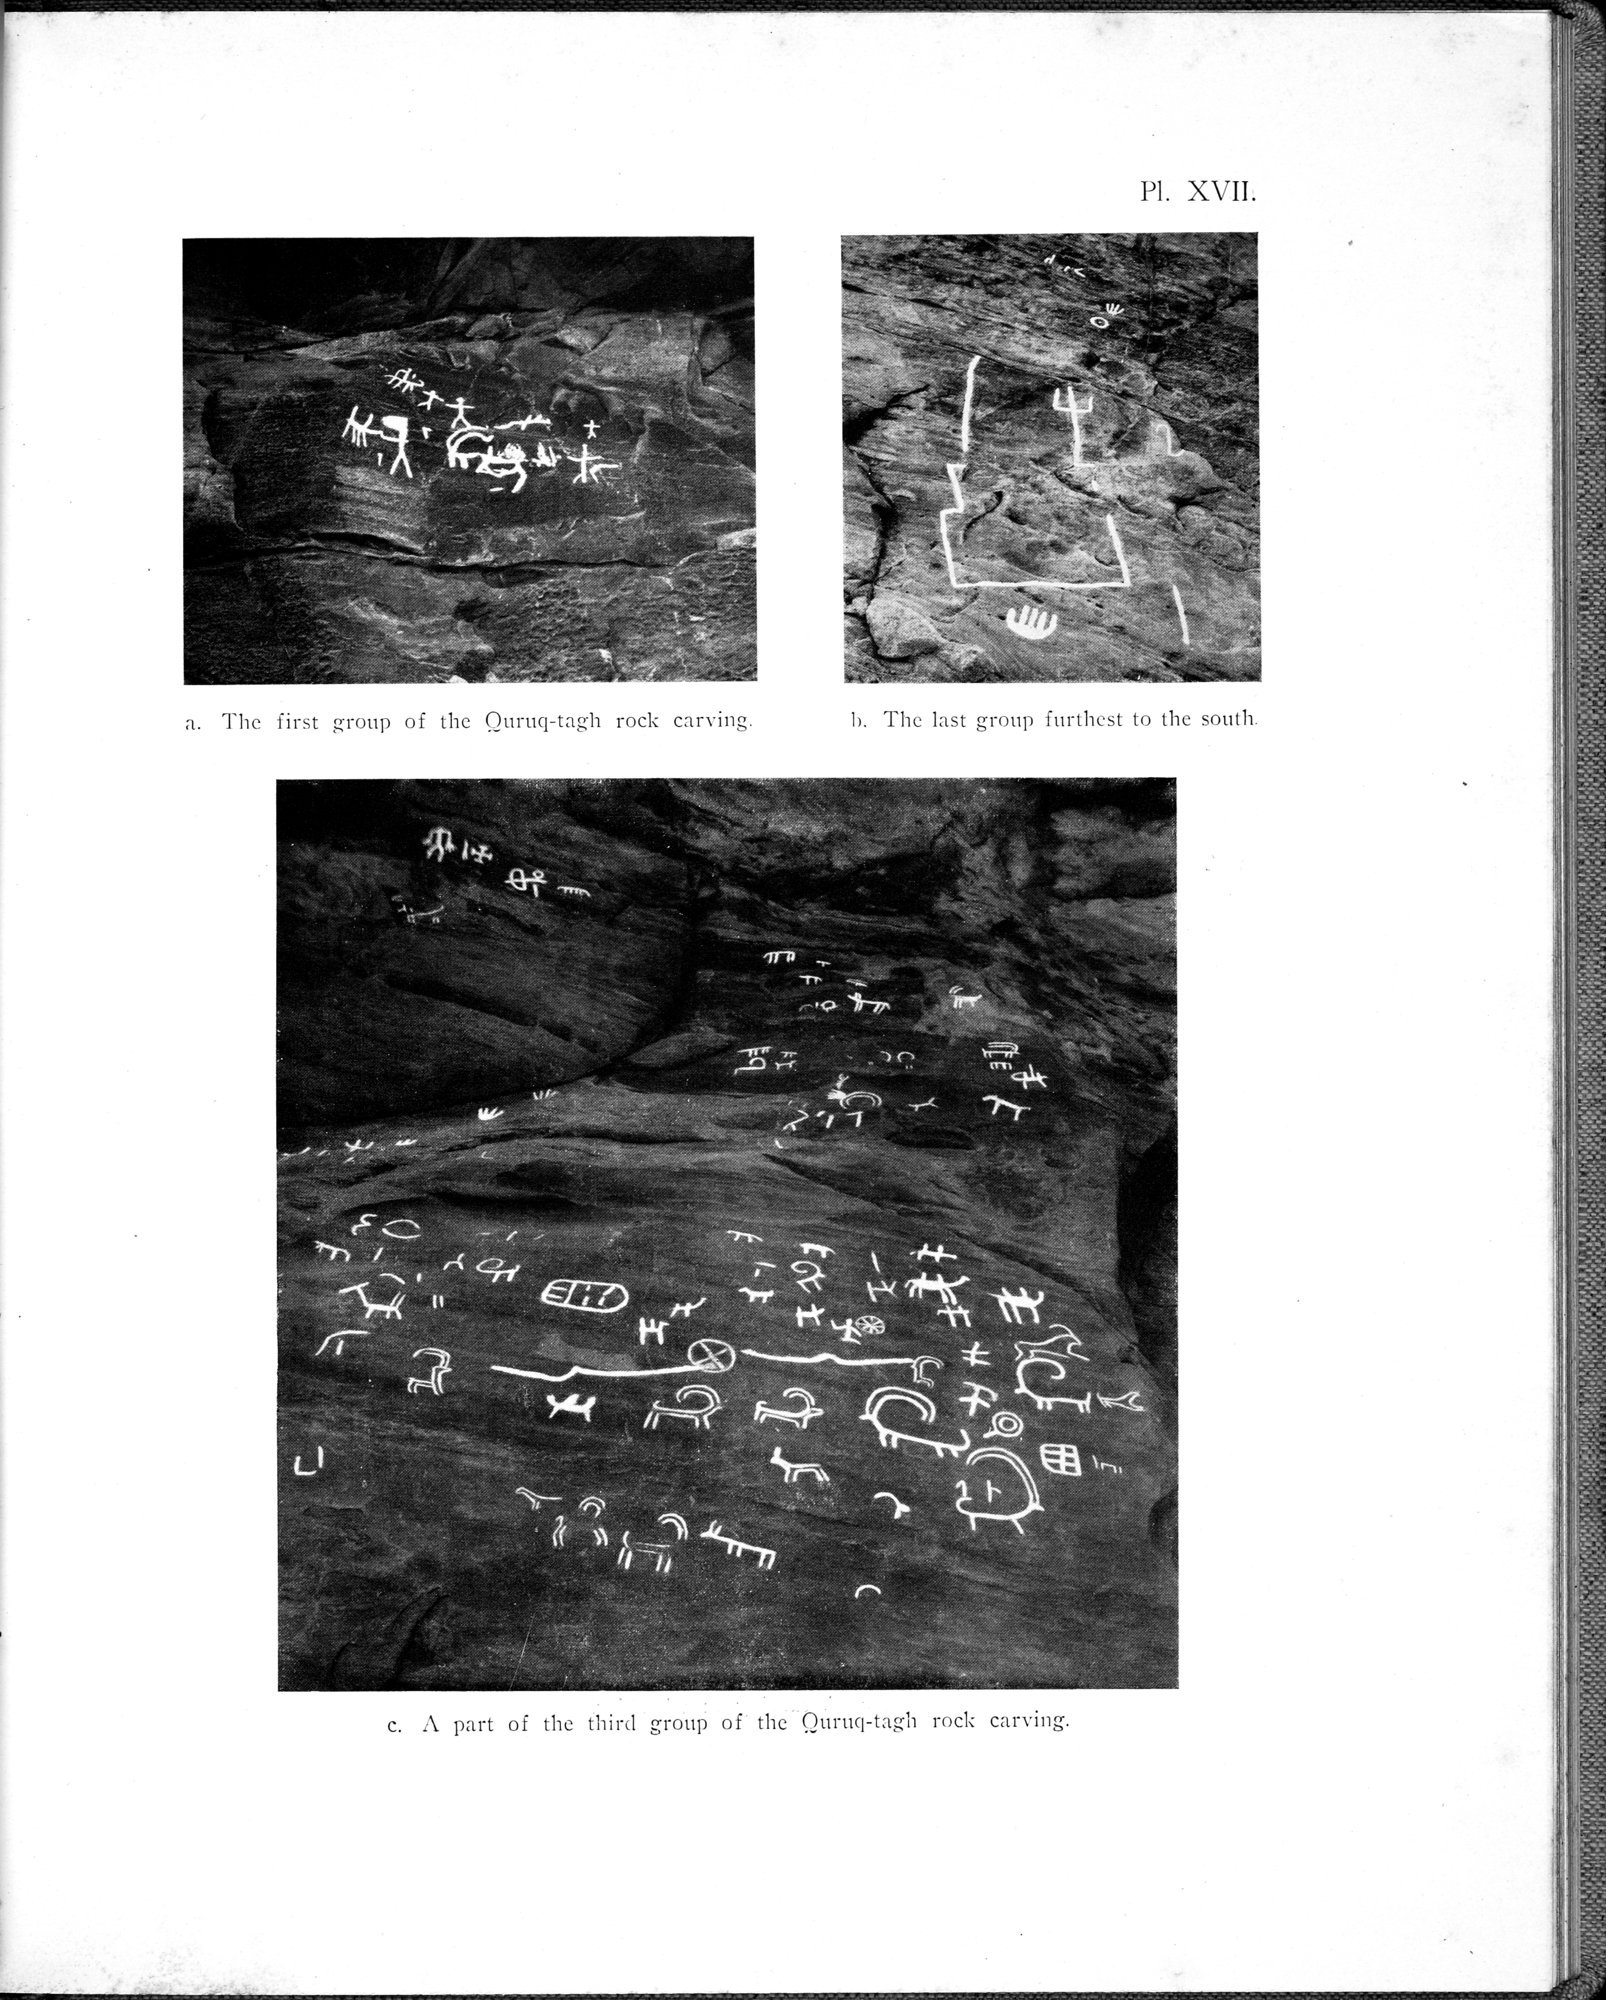 Archaeological Researches in Sinkiang : vol.1 / 231 ページ(白黒高解像度画像)